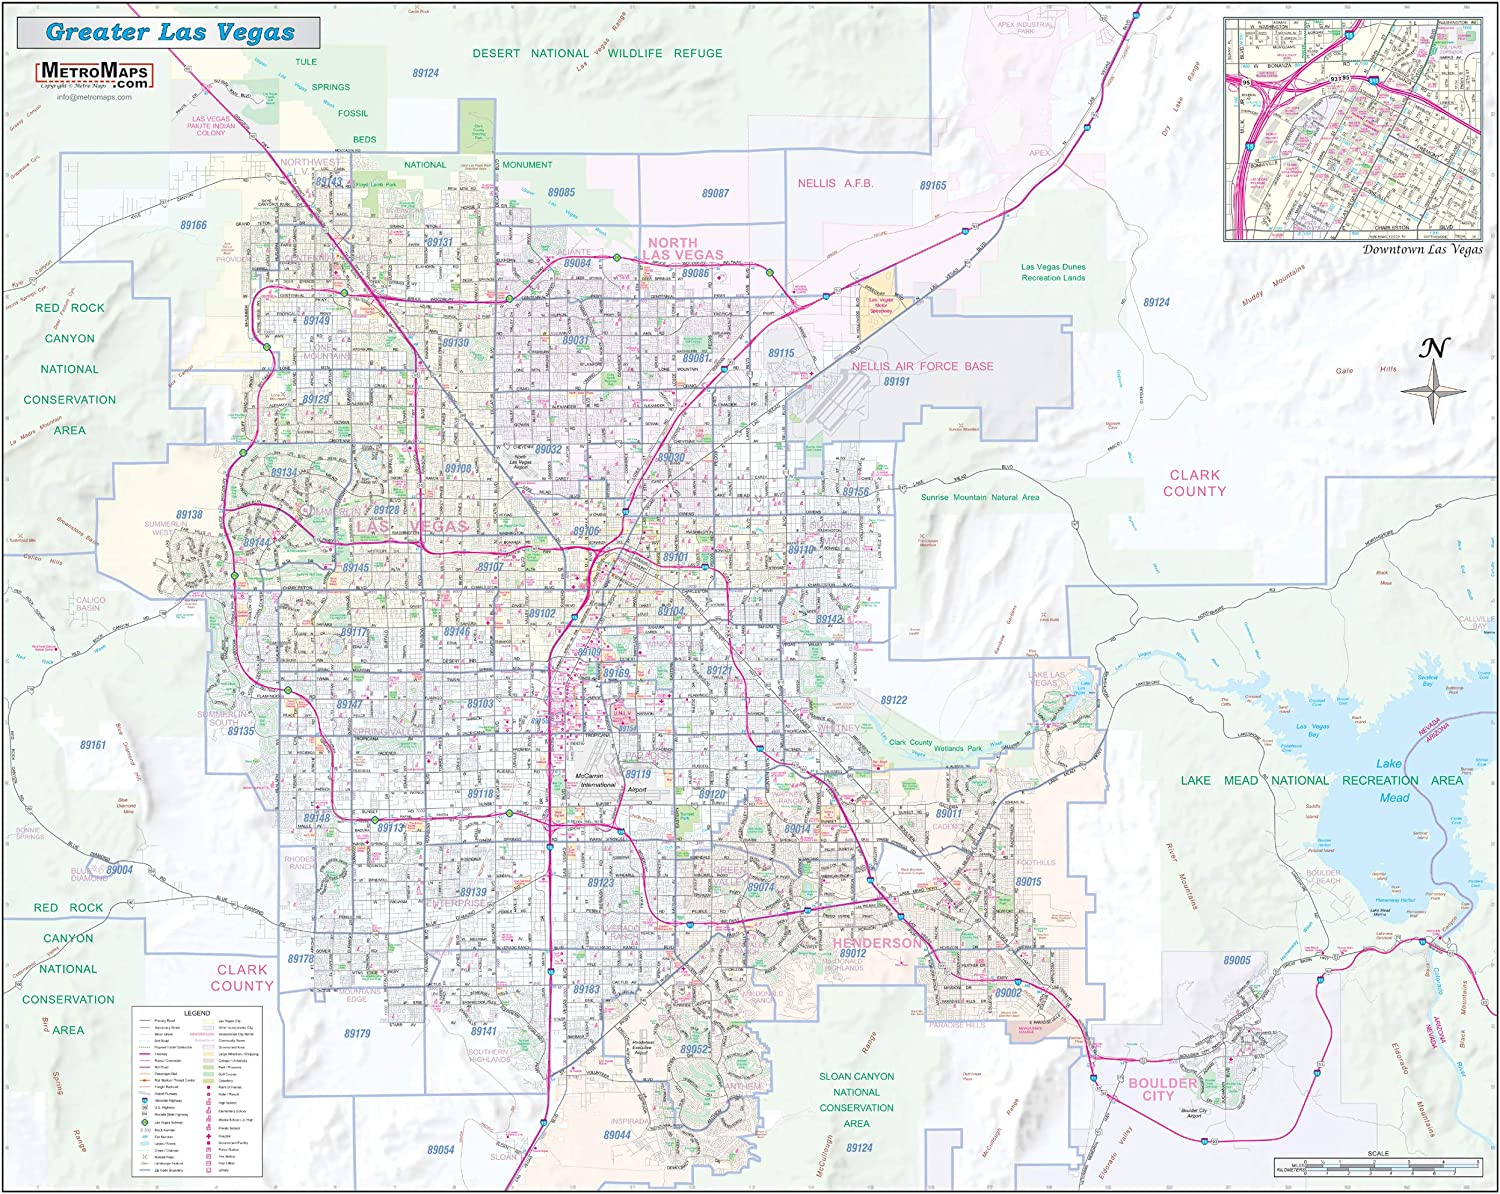 "Greater Las Vegas NV Detailed Region Wall Map (55""x44"" Laminated)"